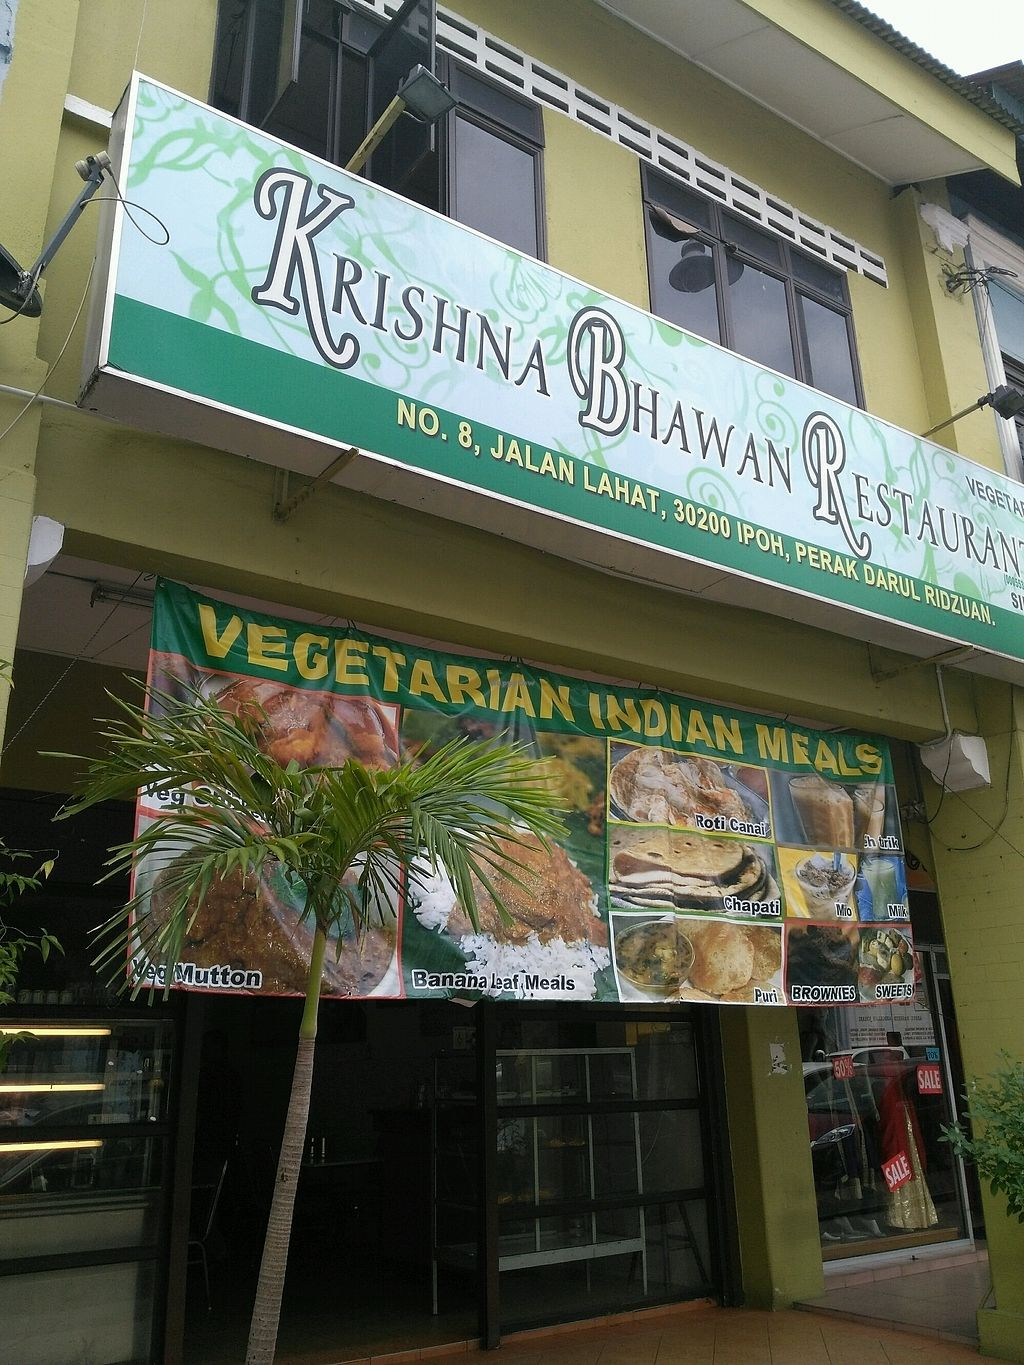 "Photo of Krishna Bhawan Restaurant  by <a href=""/members/profile/uradlham"">uradlham</a> <br/>street sign and entrance <br/> September 26, 2017  - <a href='/contact/abuse/image/24175/308645'>Report</a>"